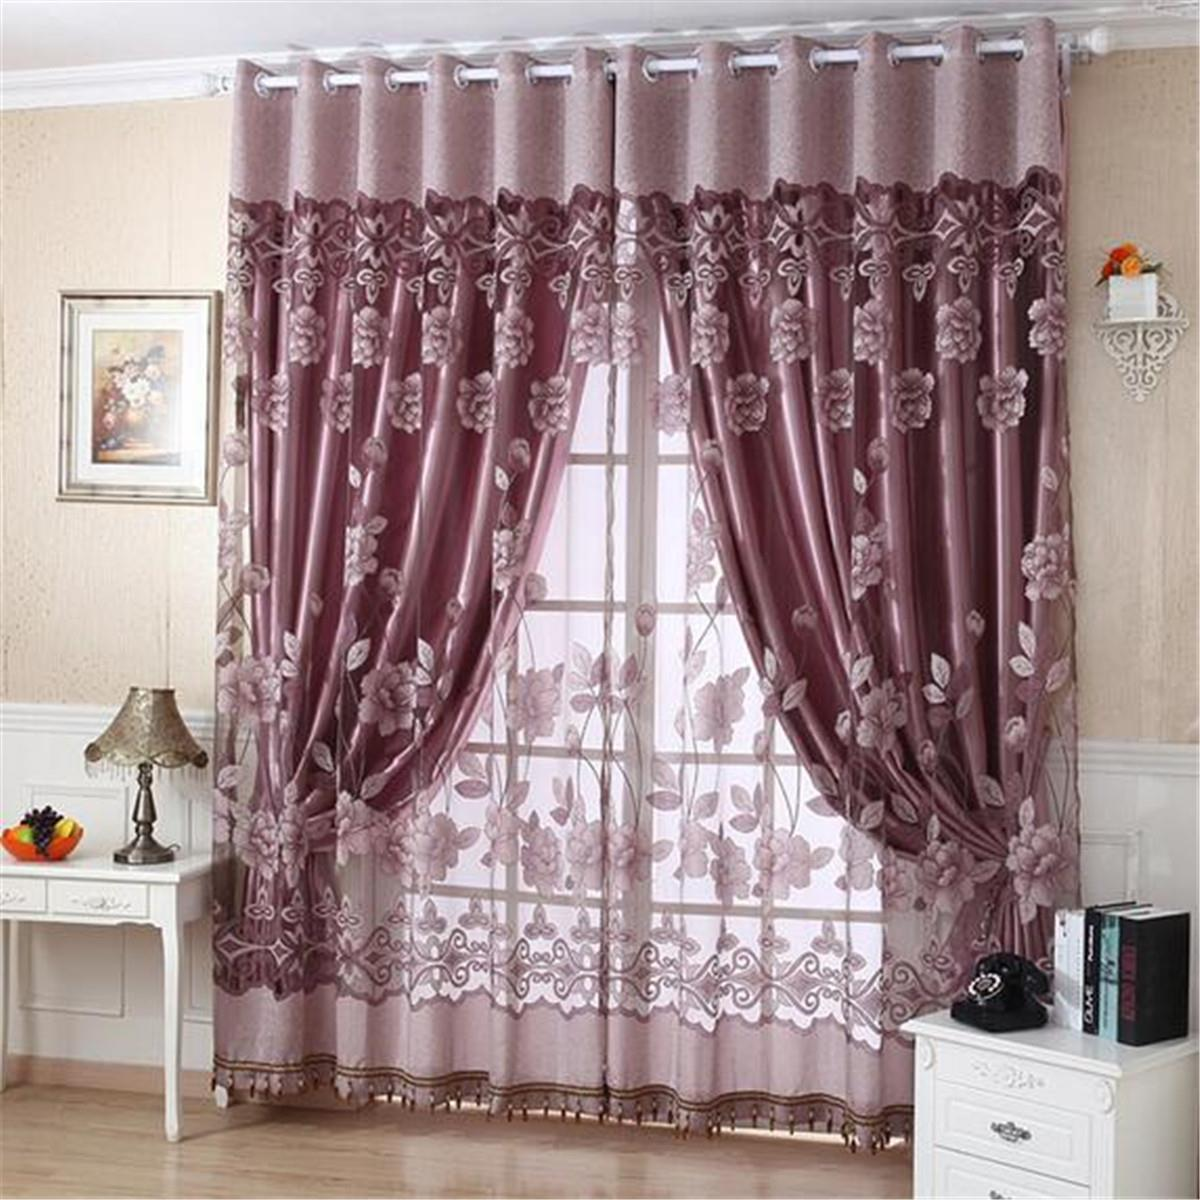 Aliexpress.com : Buy Elegant Flower Print Tulle Door Drape Window Curtain  Home Panel Sheer Scarf Valances Living Room Bedroom Decorating From  Reliable ... Part 98